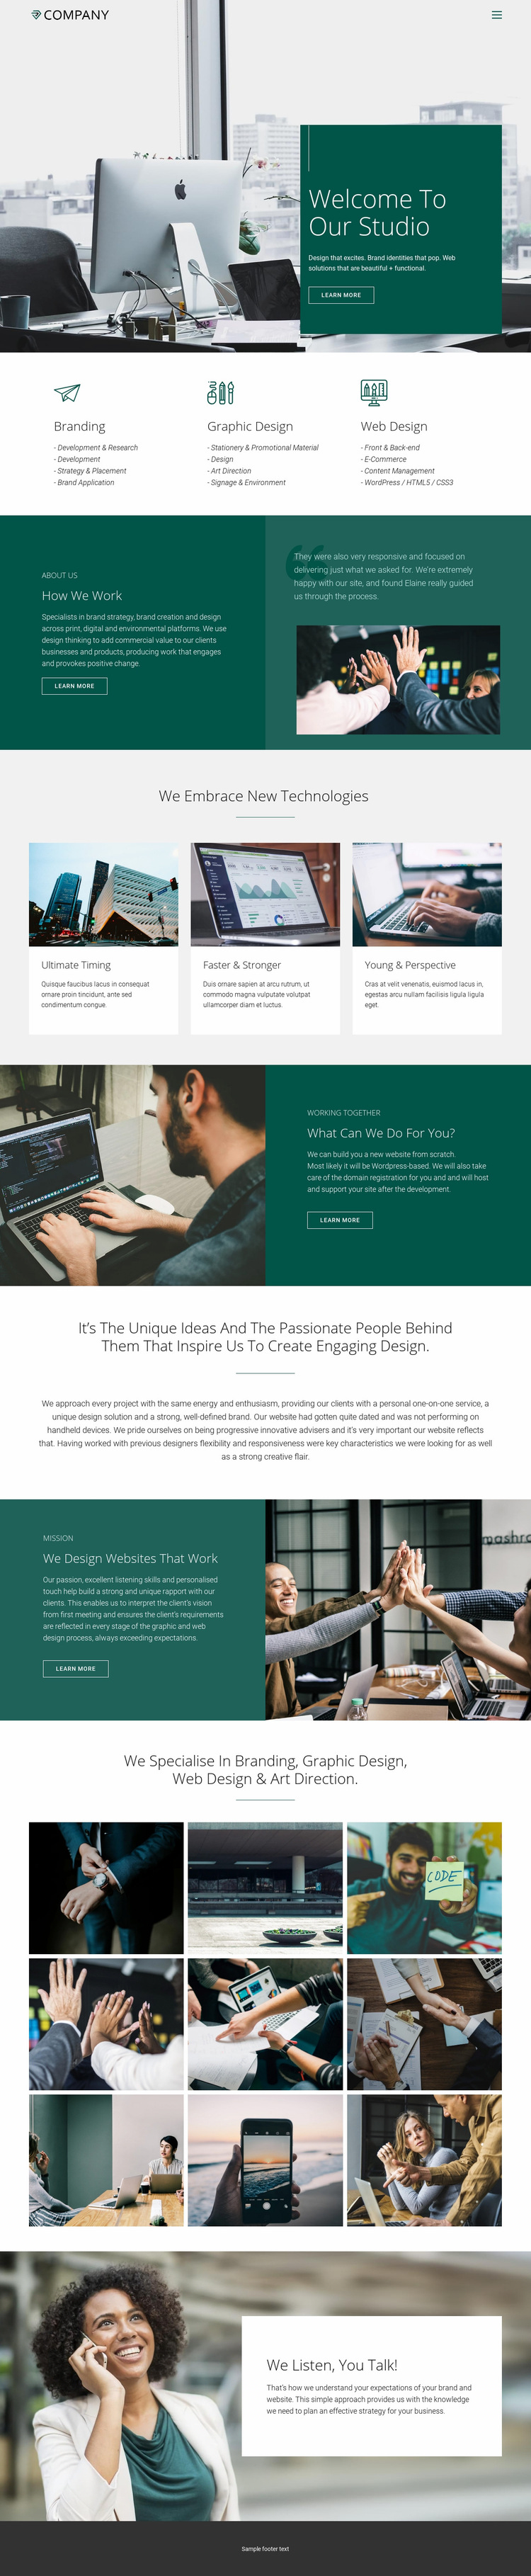 Trusty relations in business Web Page Design